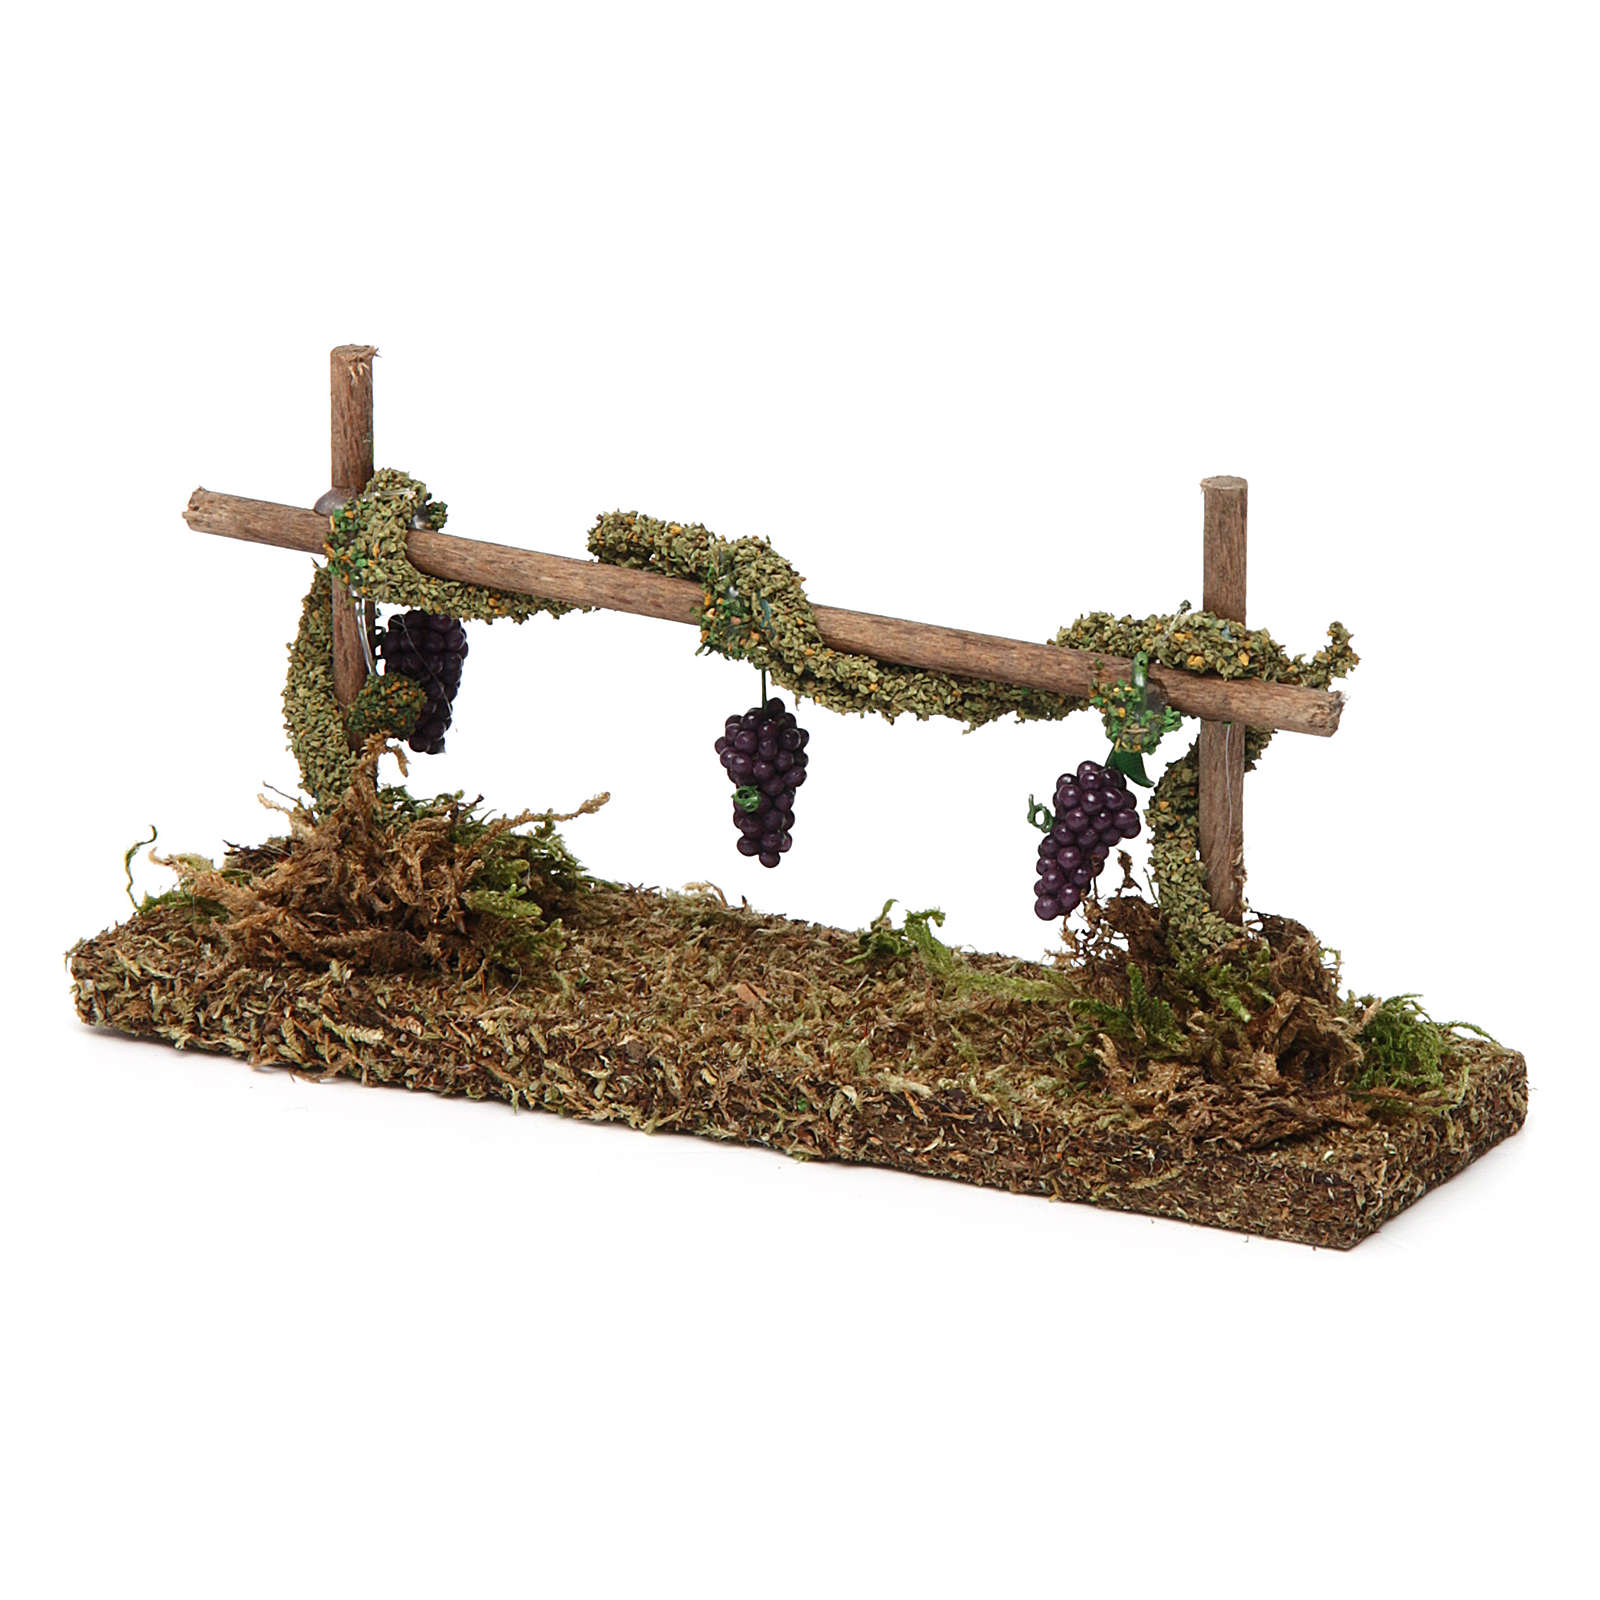 Vineyard with grapes 5x15x5 cm 4